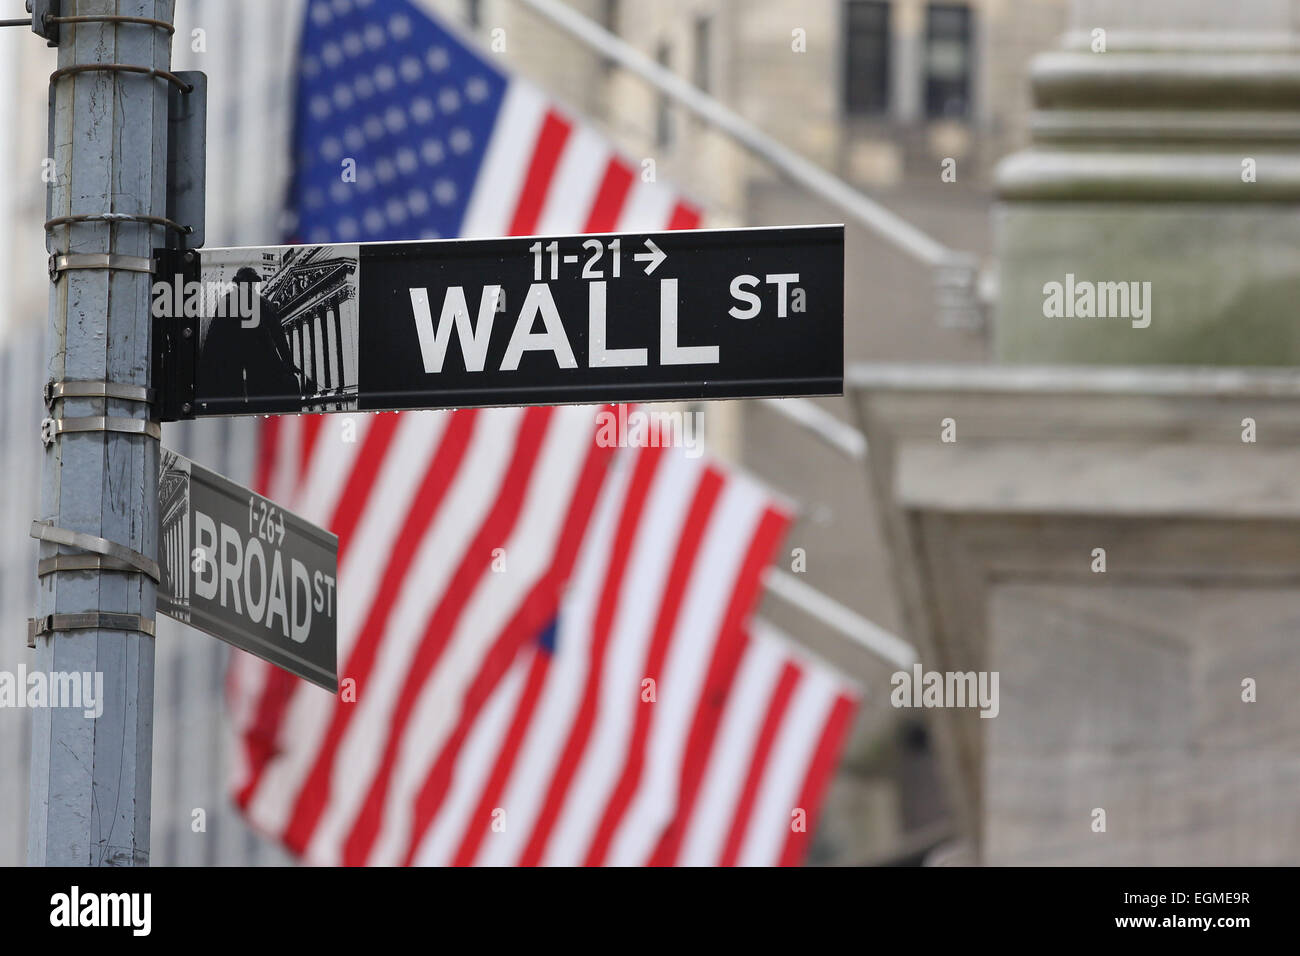 Wall Street et la Bourse de New York, le centre-ville de Financial District, Manhattan, New York City, USA. Photo Stock